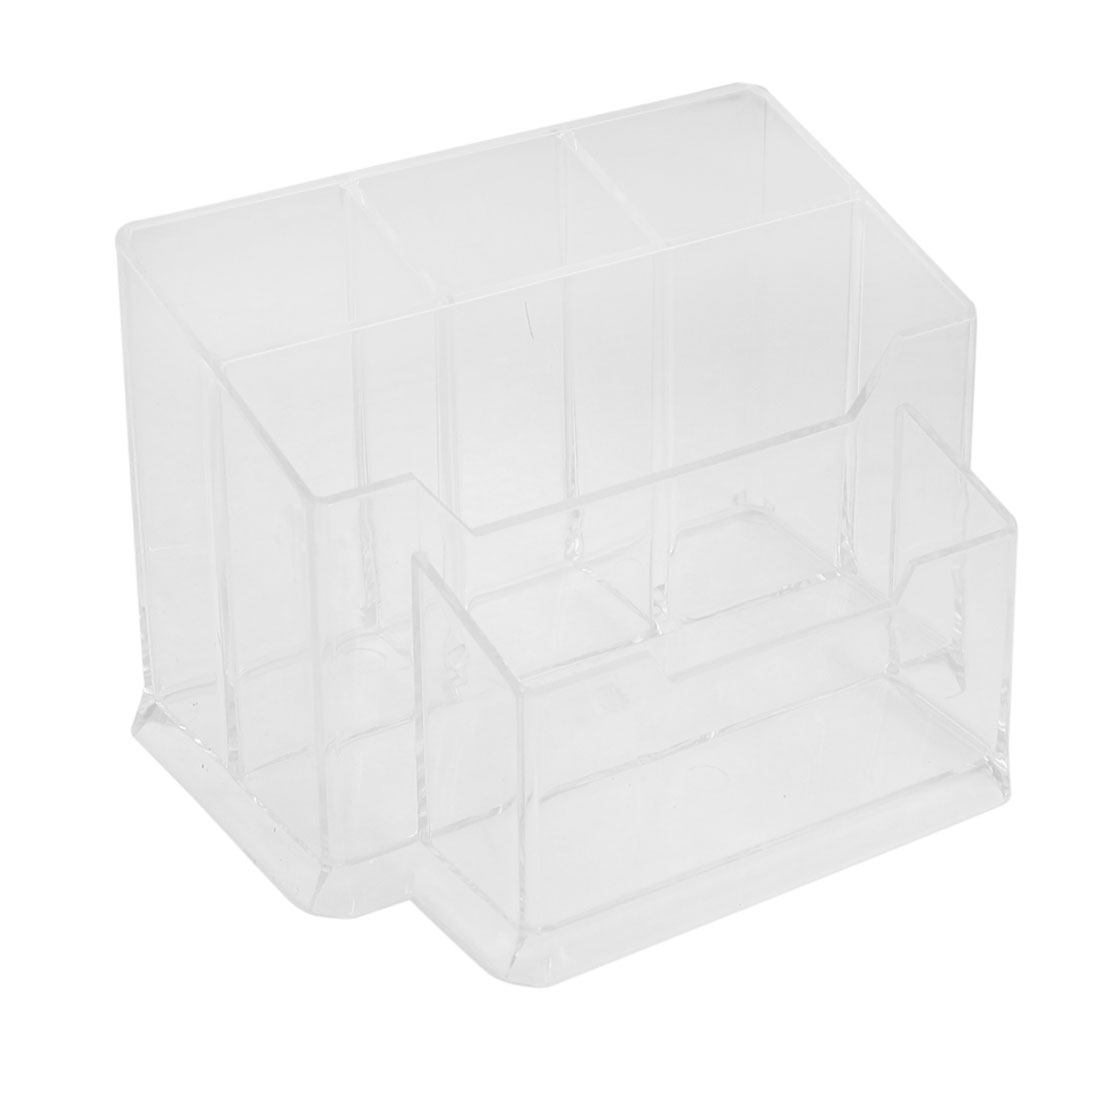 Clear Plastic 5 Sections Muti Function Pen Holder Desk Organizer